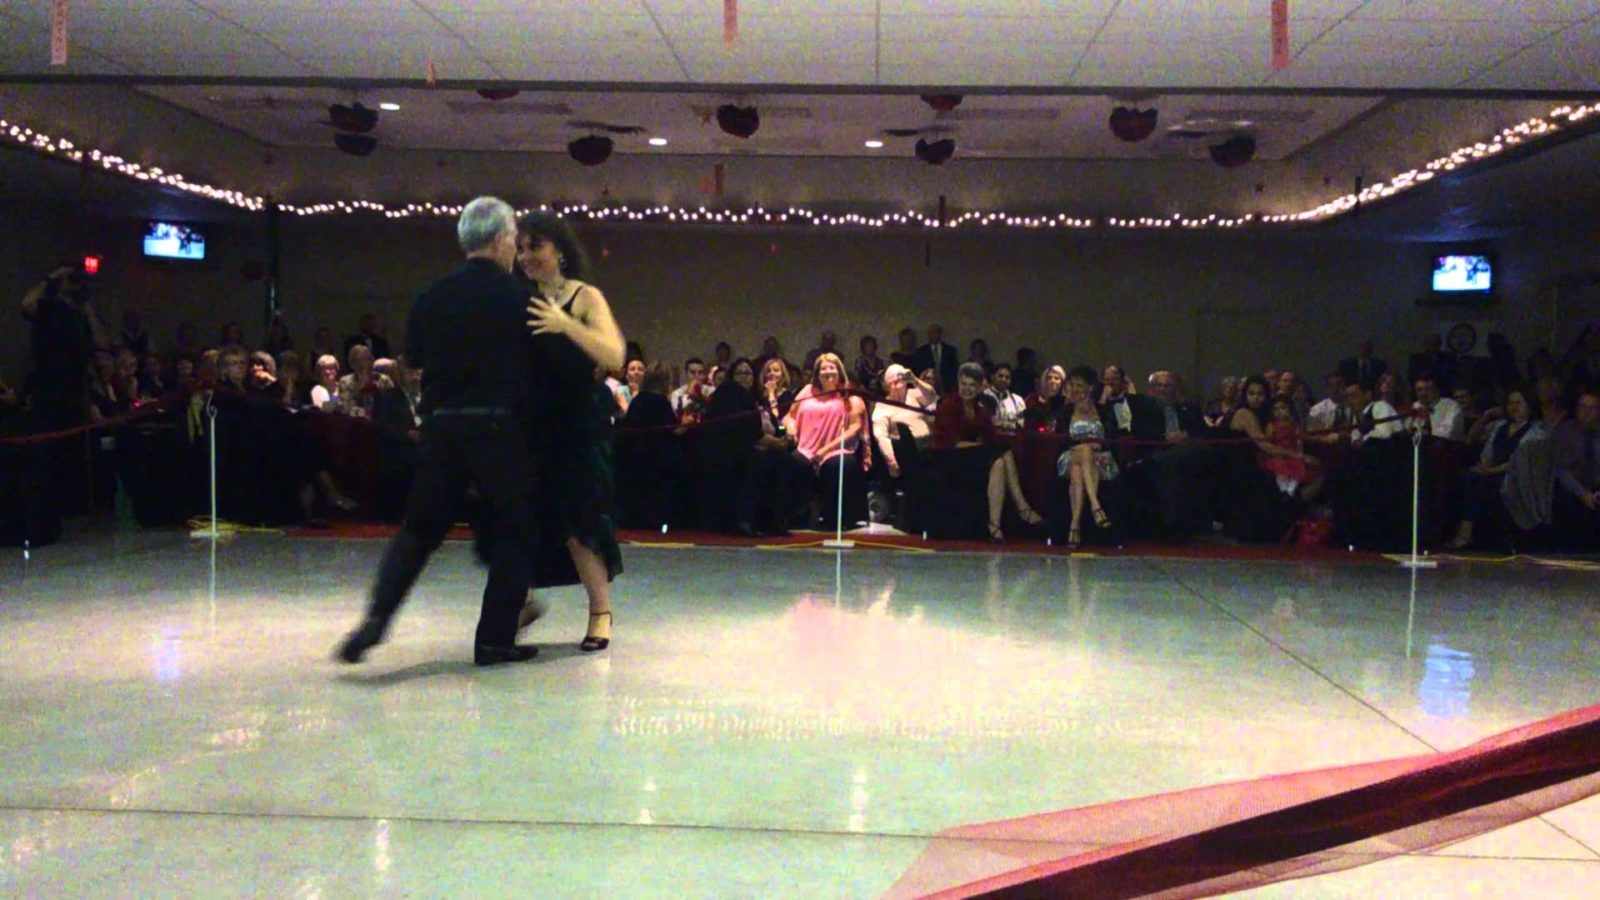 Katrina Bos and Matt Hoy doing the Tango at Dancing with the Stars in Goderich 2013